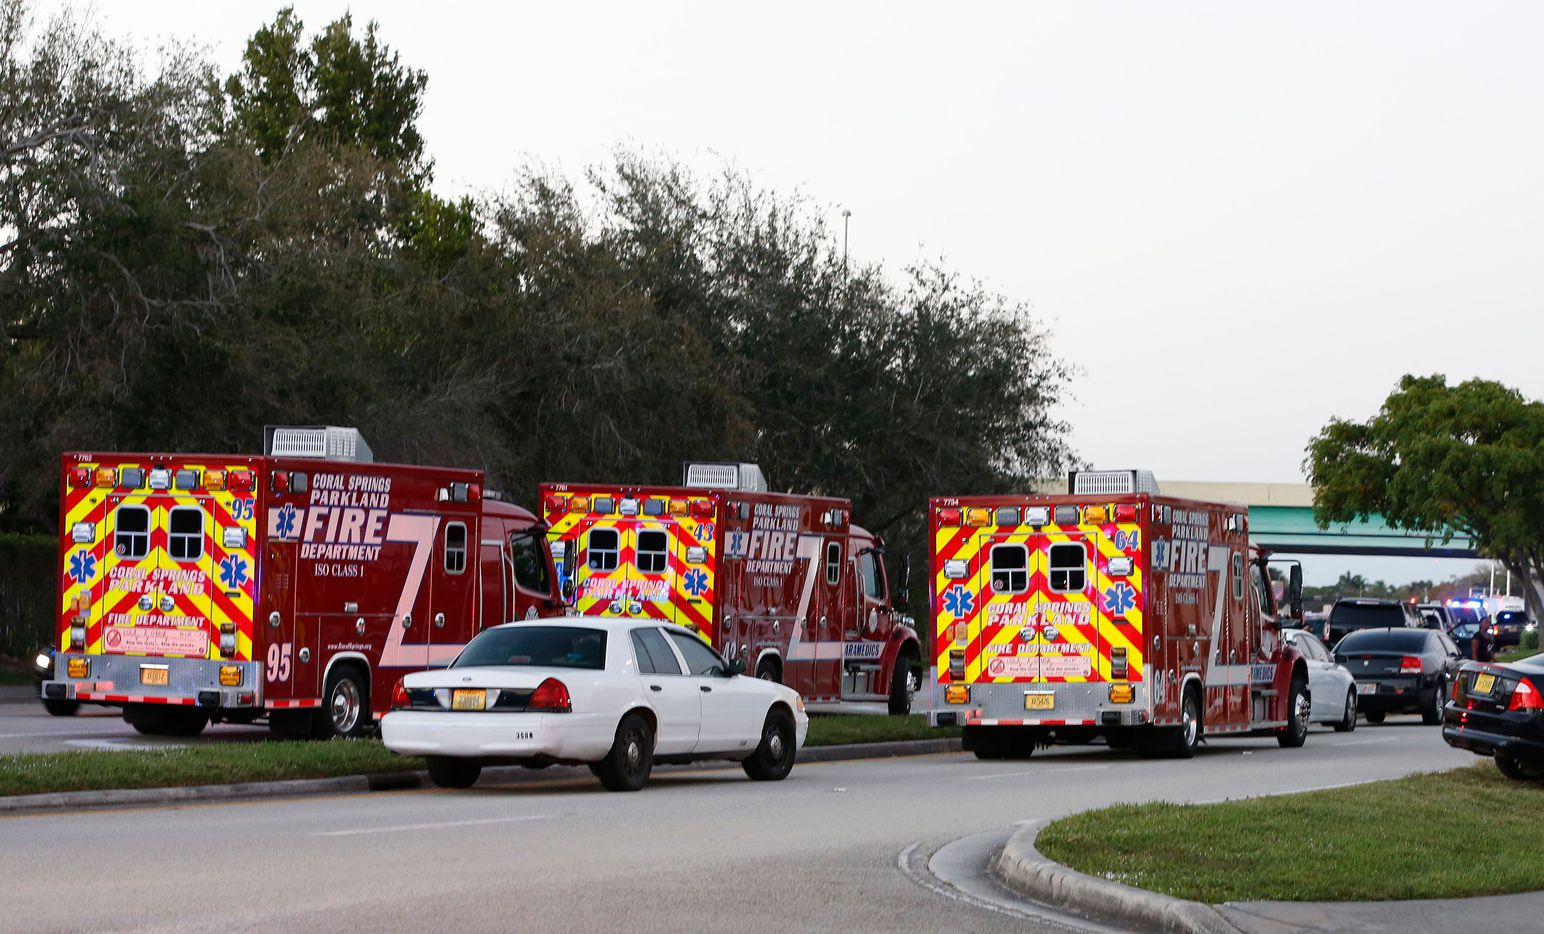 Fire Rescue vehicles block the road to Marjory Stoneman Douglas High School in Parkland, Florida, a city about 50 miles (80 kilometers) north of Miami on February 14, 2018 following a school shooting.  A former student armed with an AR-15 rifle opened fire at a Florida high school, killing at least 17 people, officials said, in a harrowing shooting spree that saw terrified students hiding in closets and under desks as they texted for help.